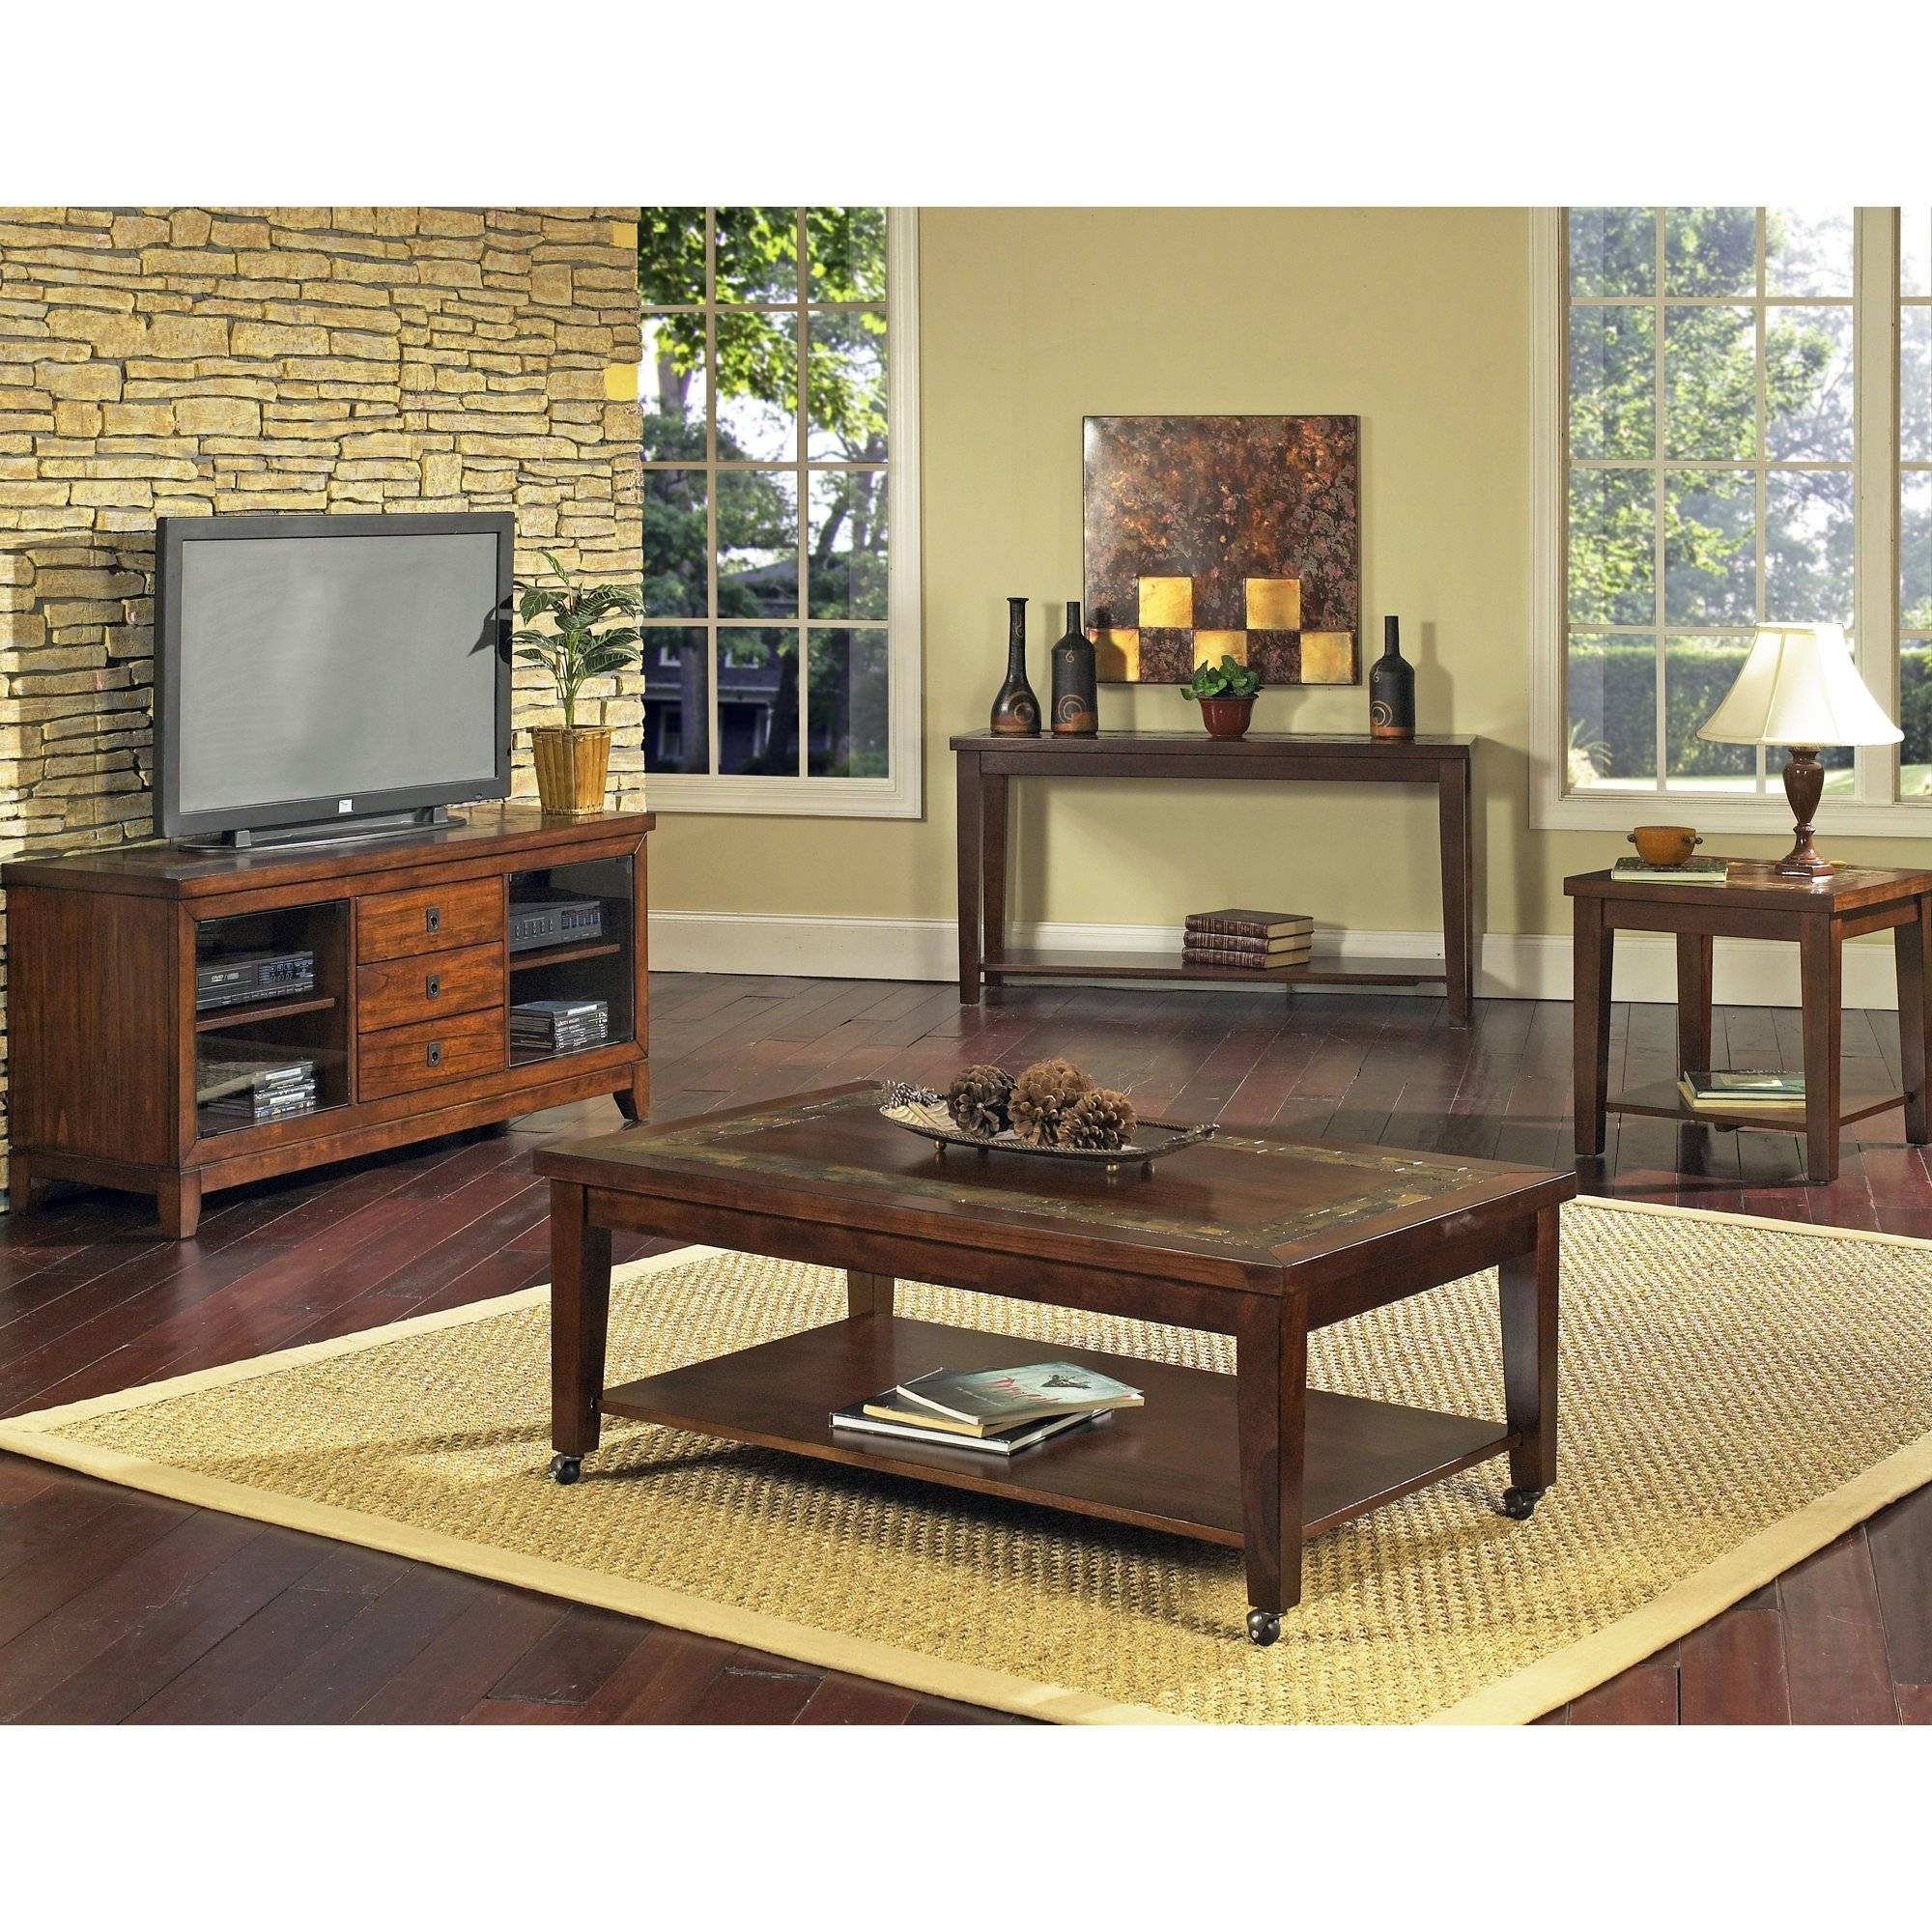 Functional Coffee Tables And Tv Stands Corner Blocked Contemporary with regard to Coffee Tables And Tv Stands (Image 7 of 30)